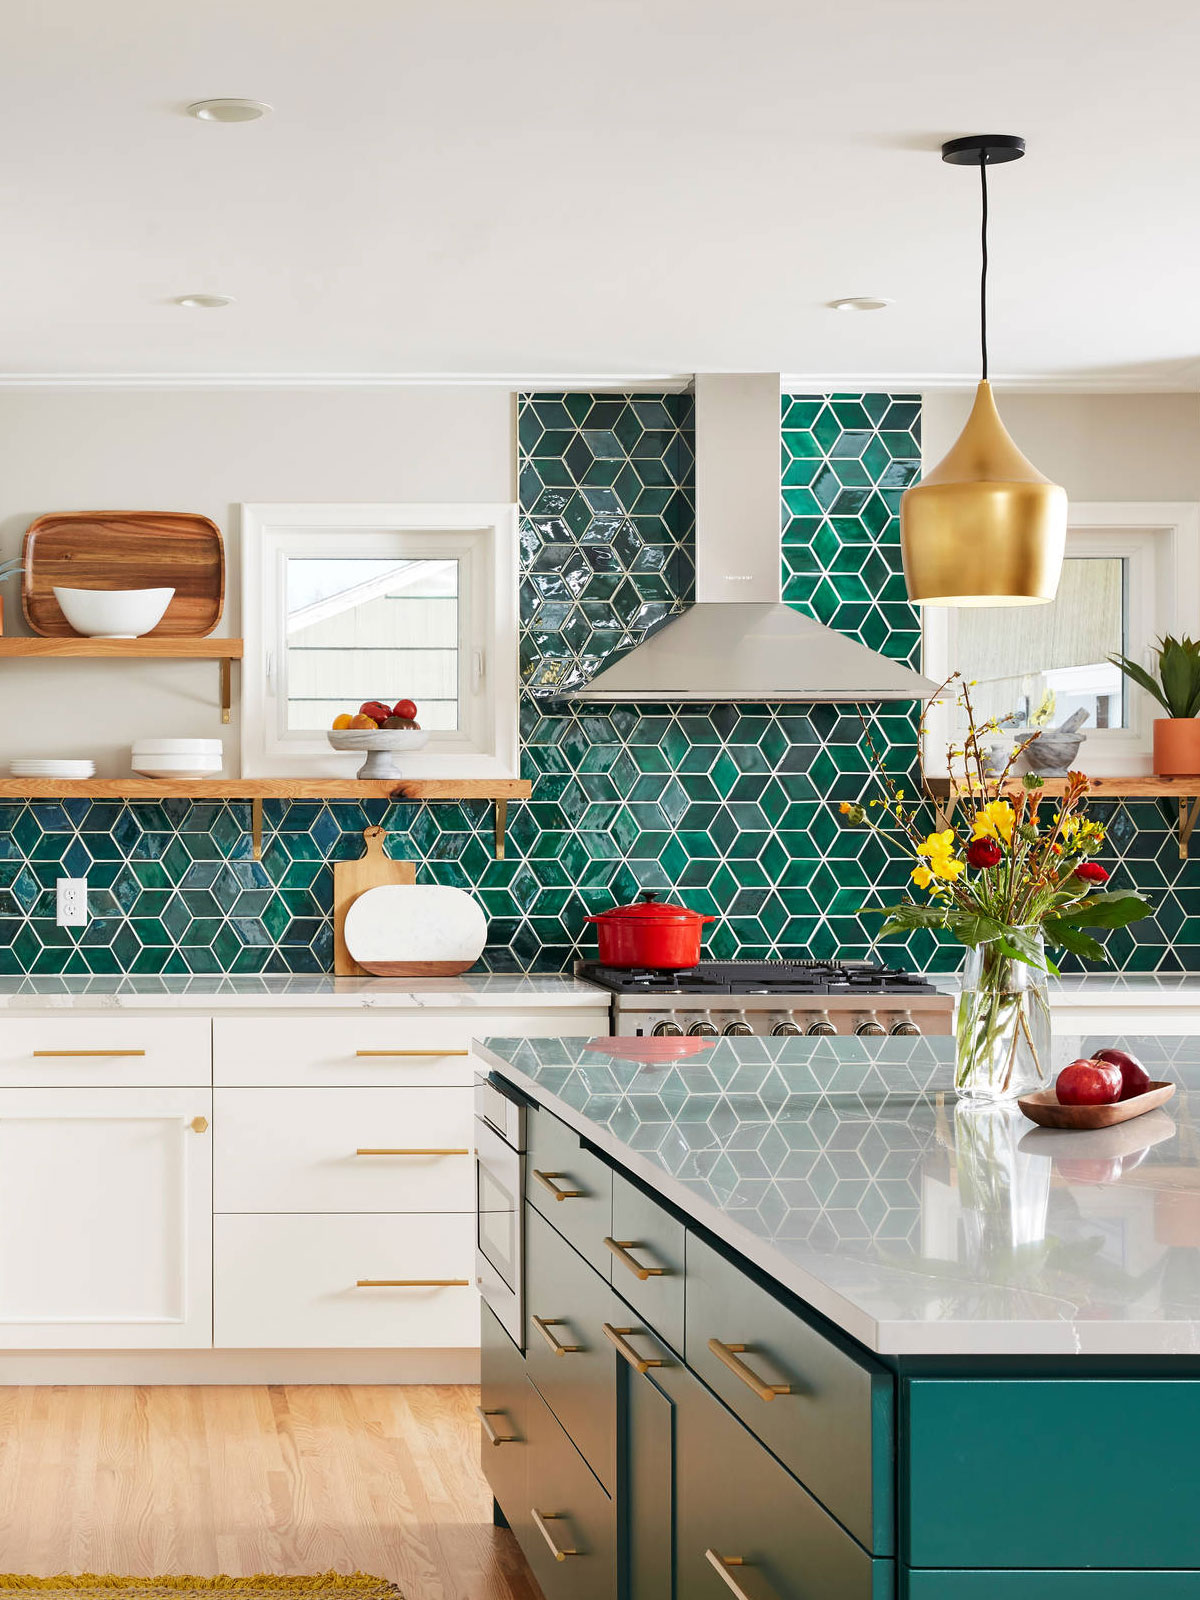 - 77+ Green Backsplash Ideas - ( Inspired By Nature ) Green Design!